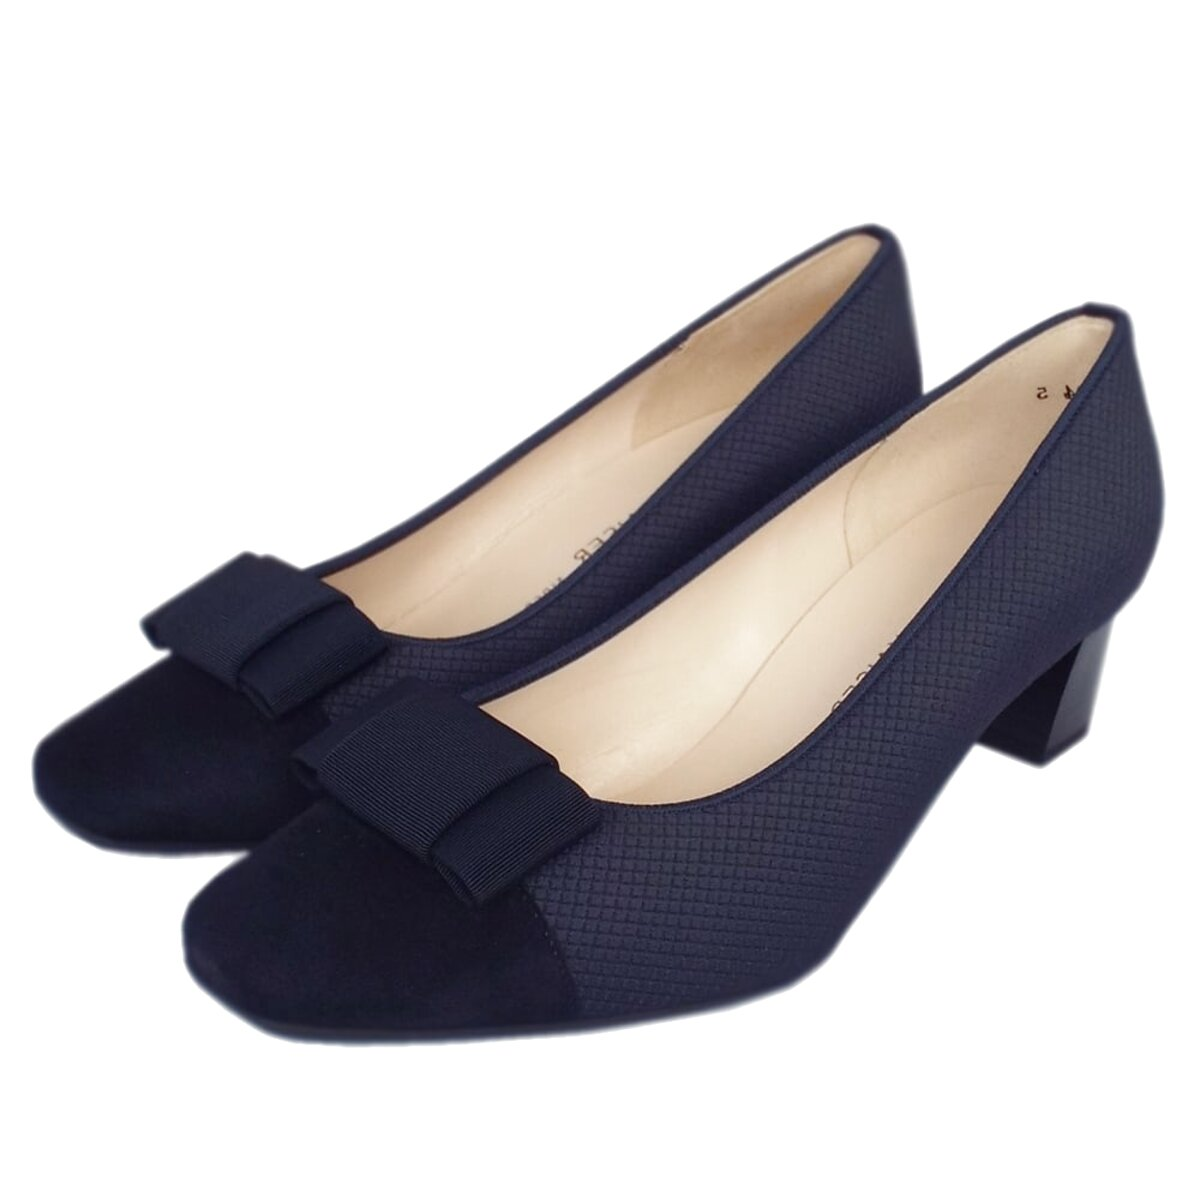 navy wide fit shoes for sale